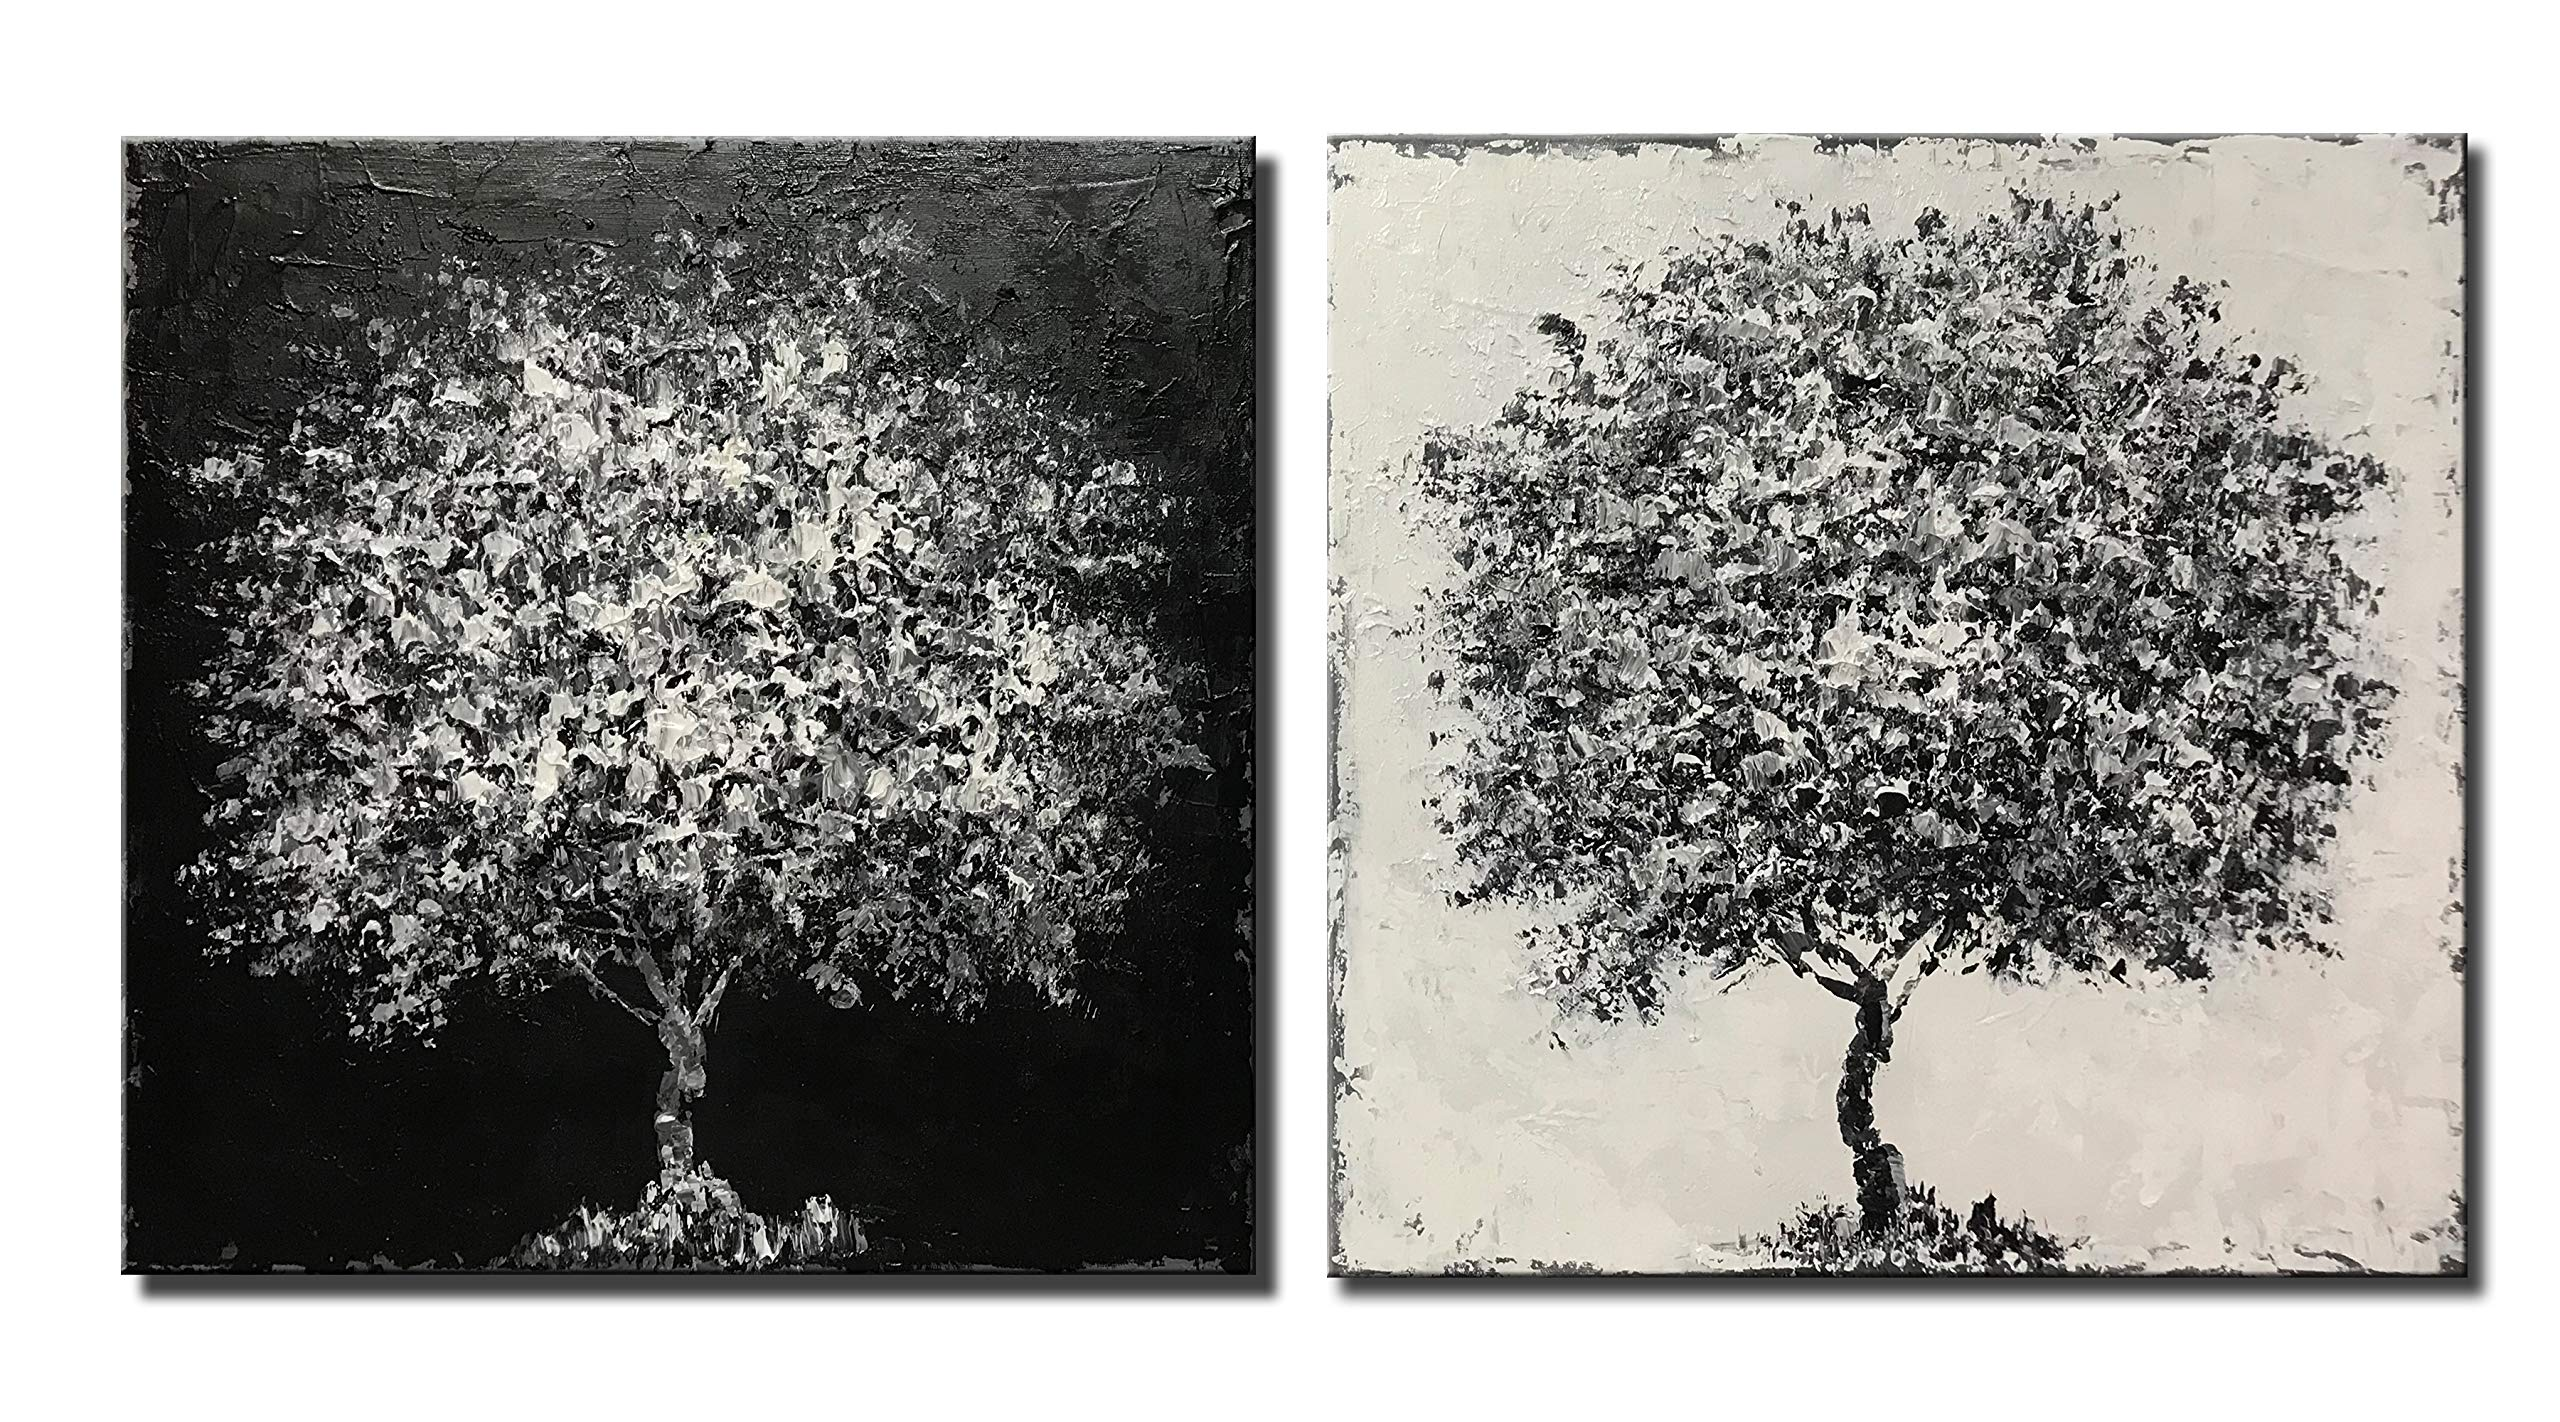 Diathou 2 Piece Abstract Wall Art 20x20 Inch x2 100% Hand Painted Black and White Tree Oil Painting Living Room Bedroom Corridor Office Modern Home Decor